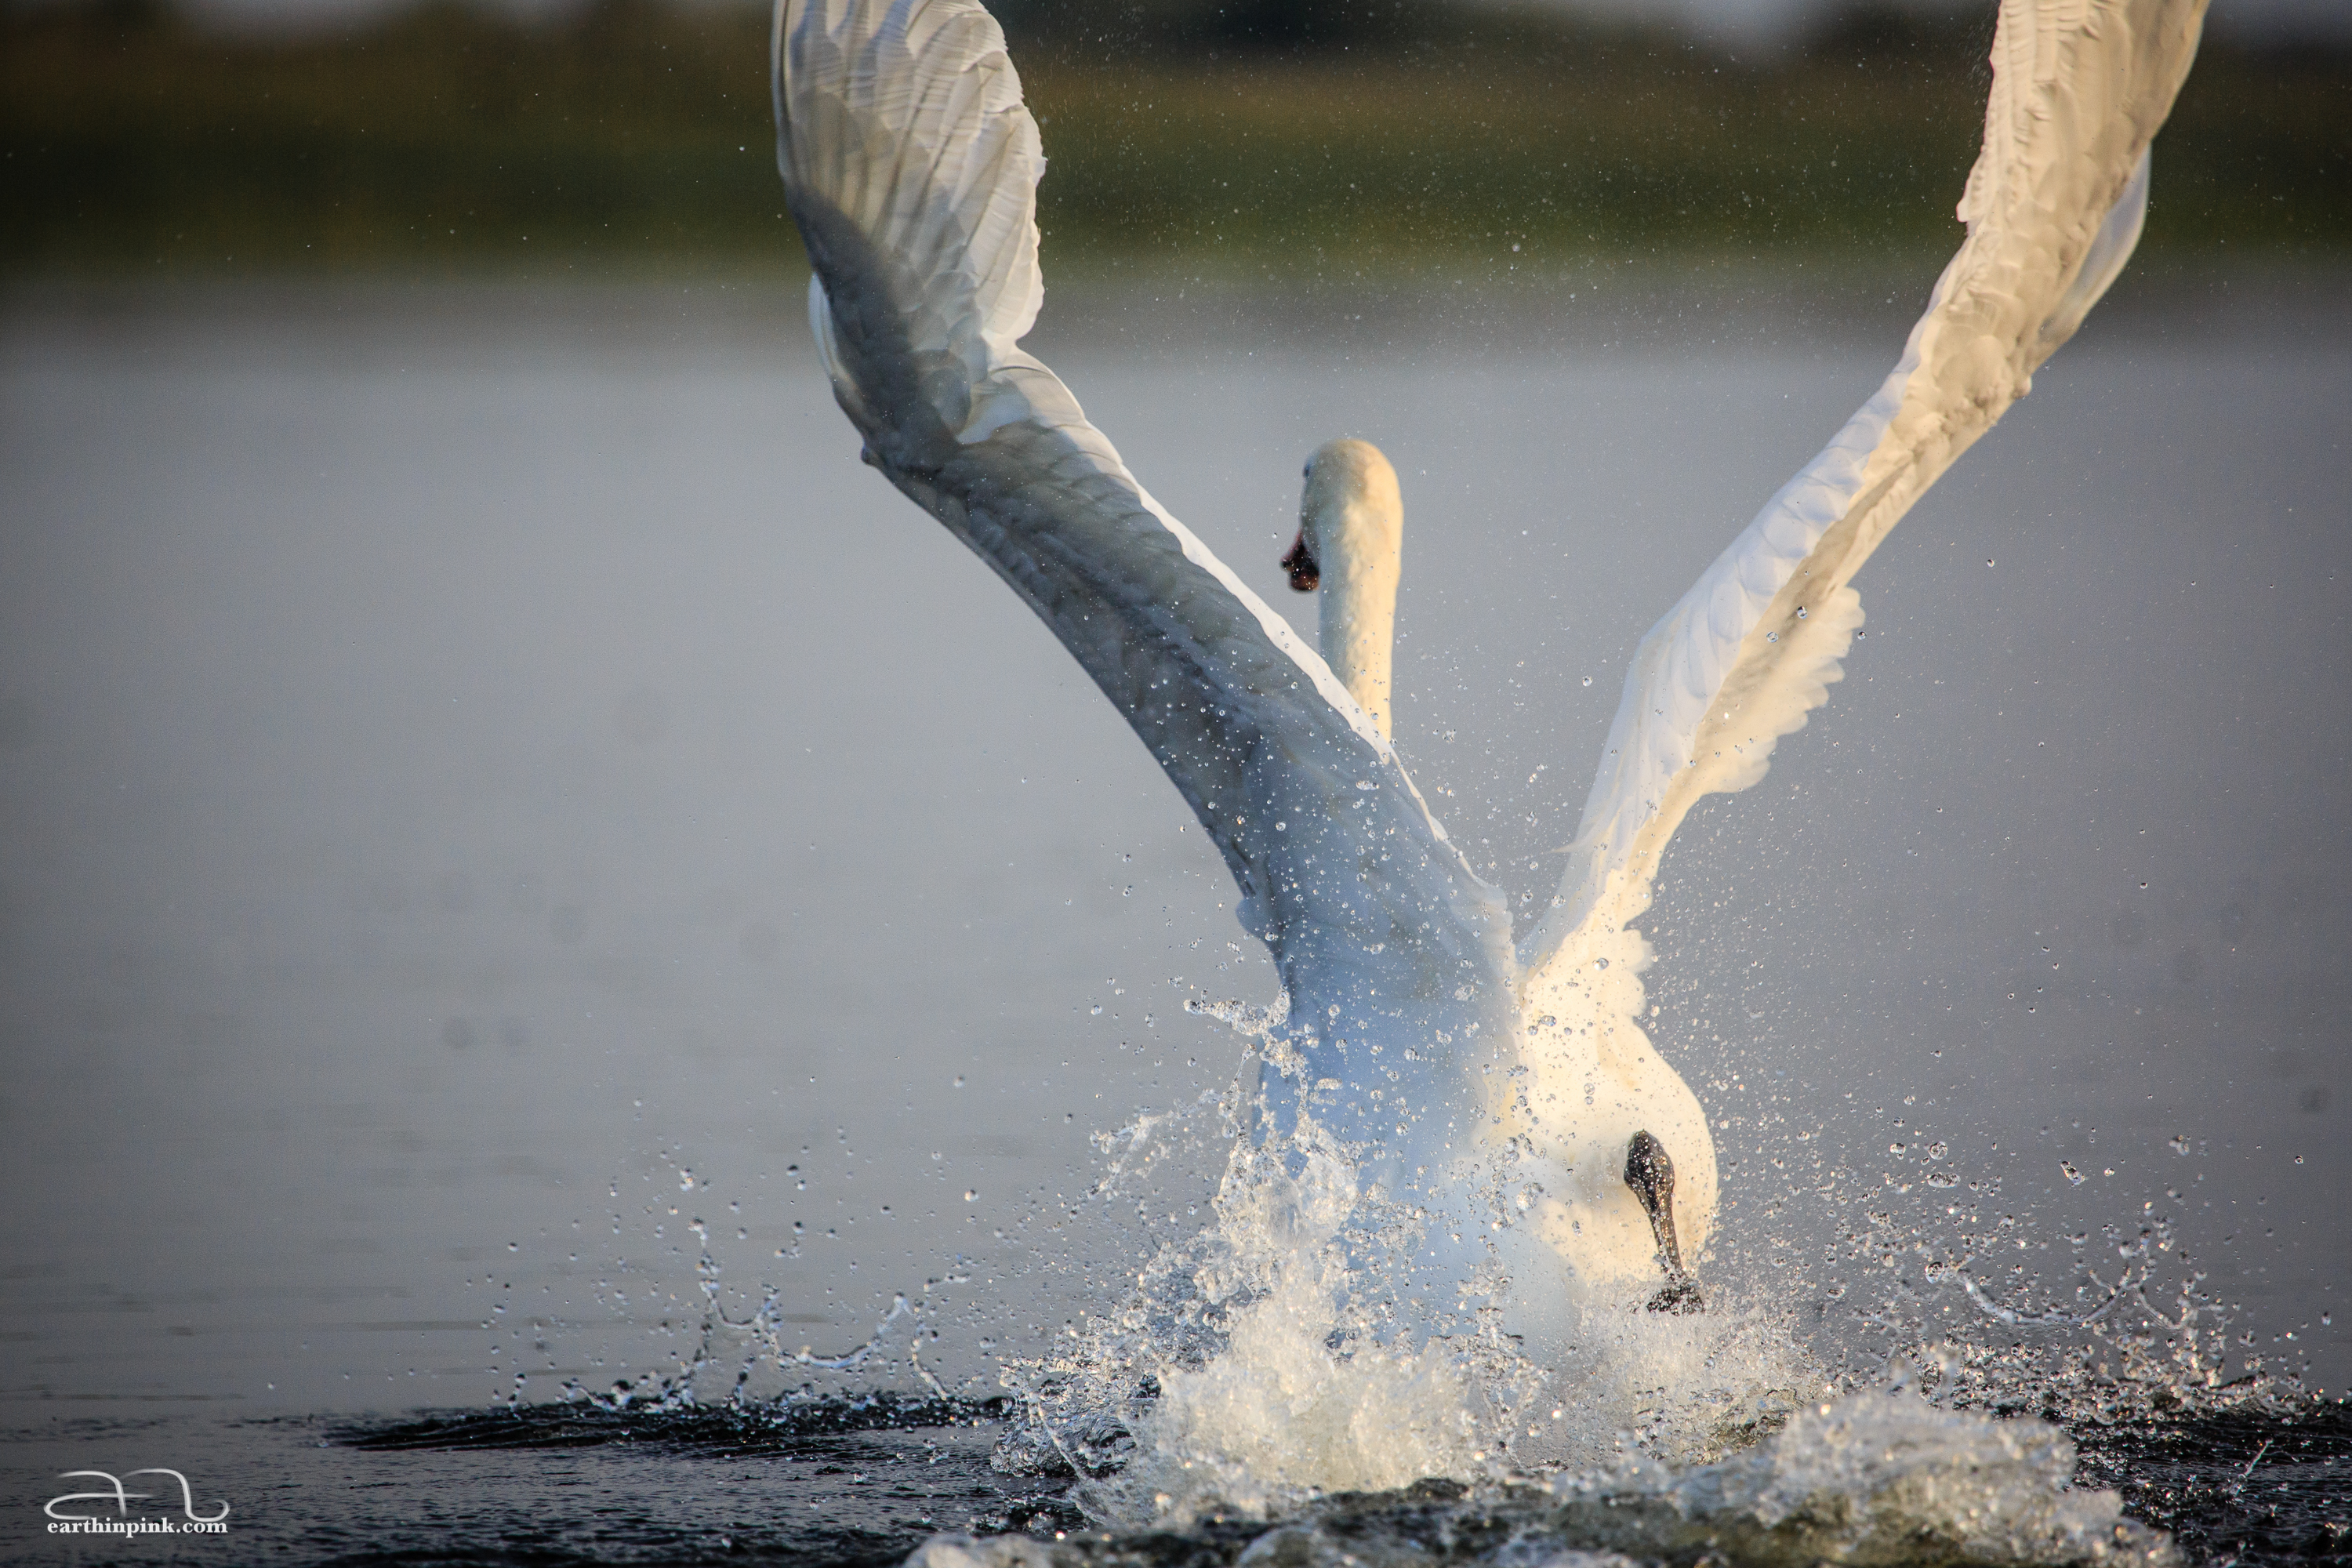 A swan trying to lift itself up from the water's surface